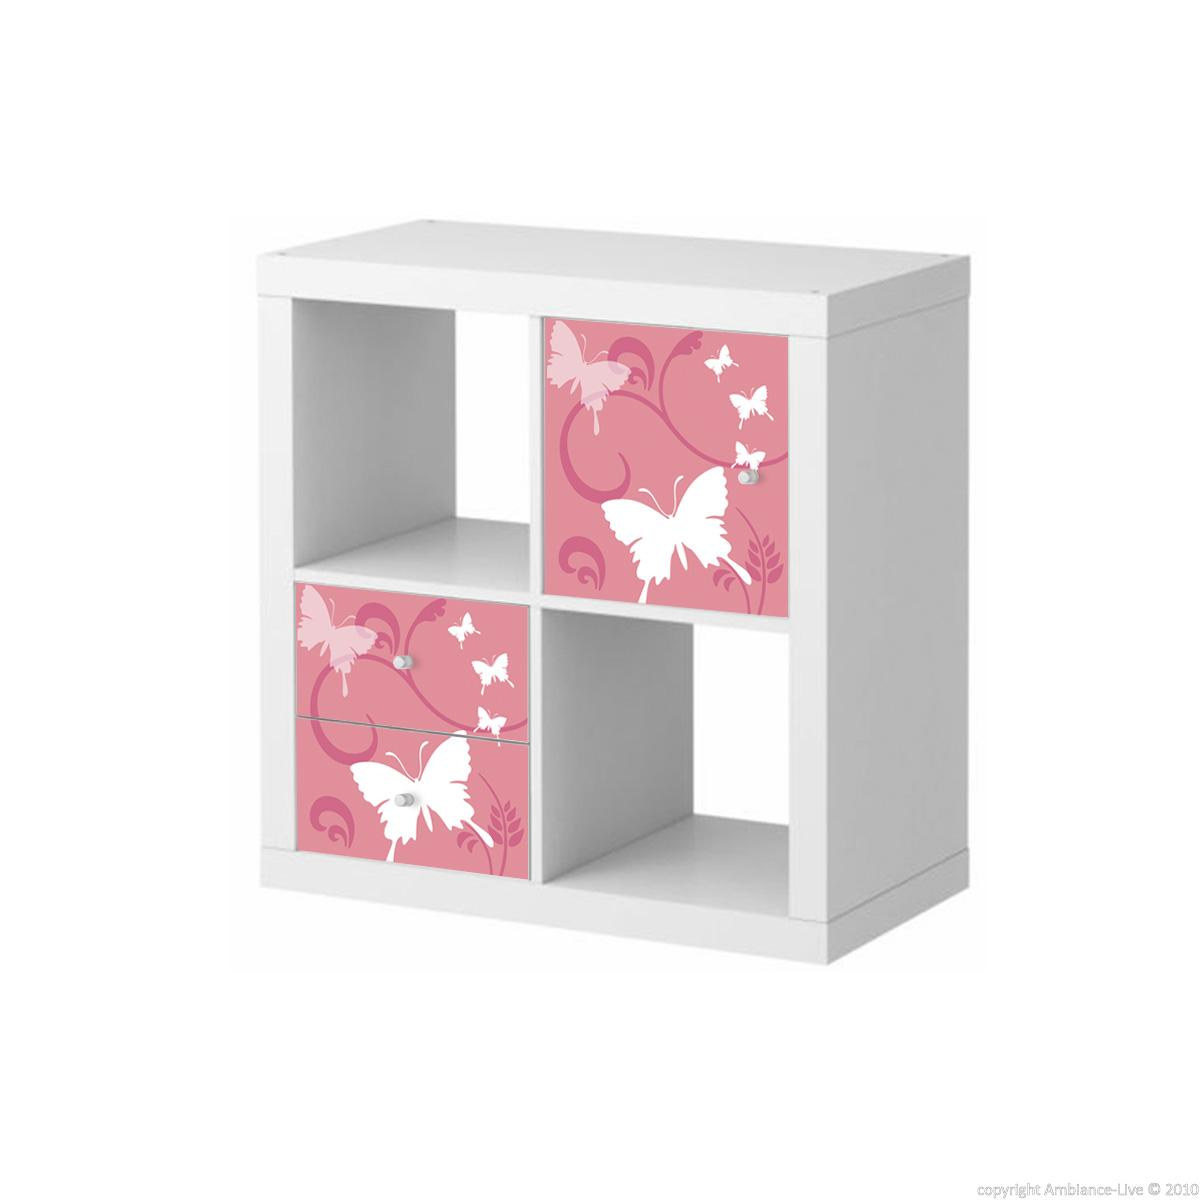 Wall decals furniture ikea wall decals furniture ikea butterfly meadow 2 - Stickers pour meubles ...